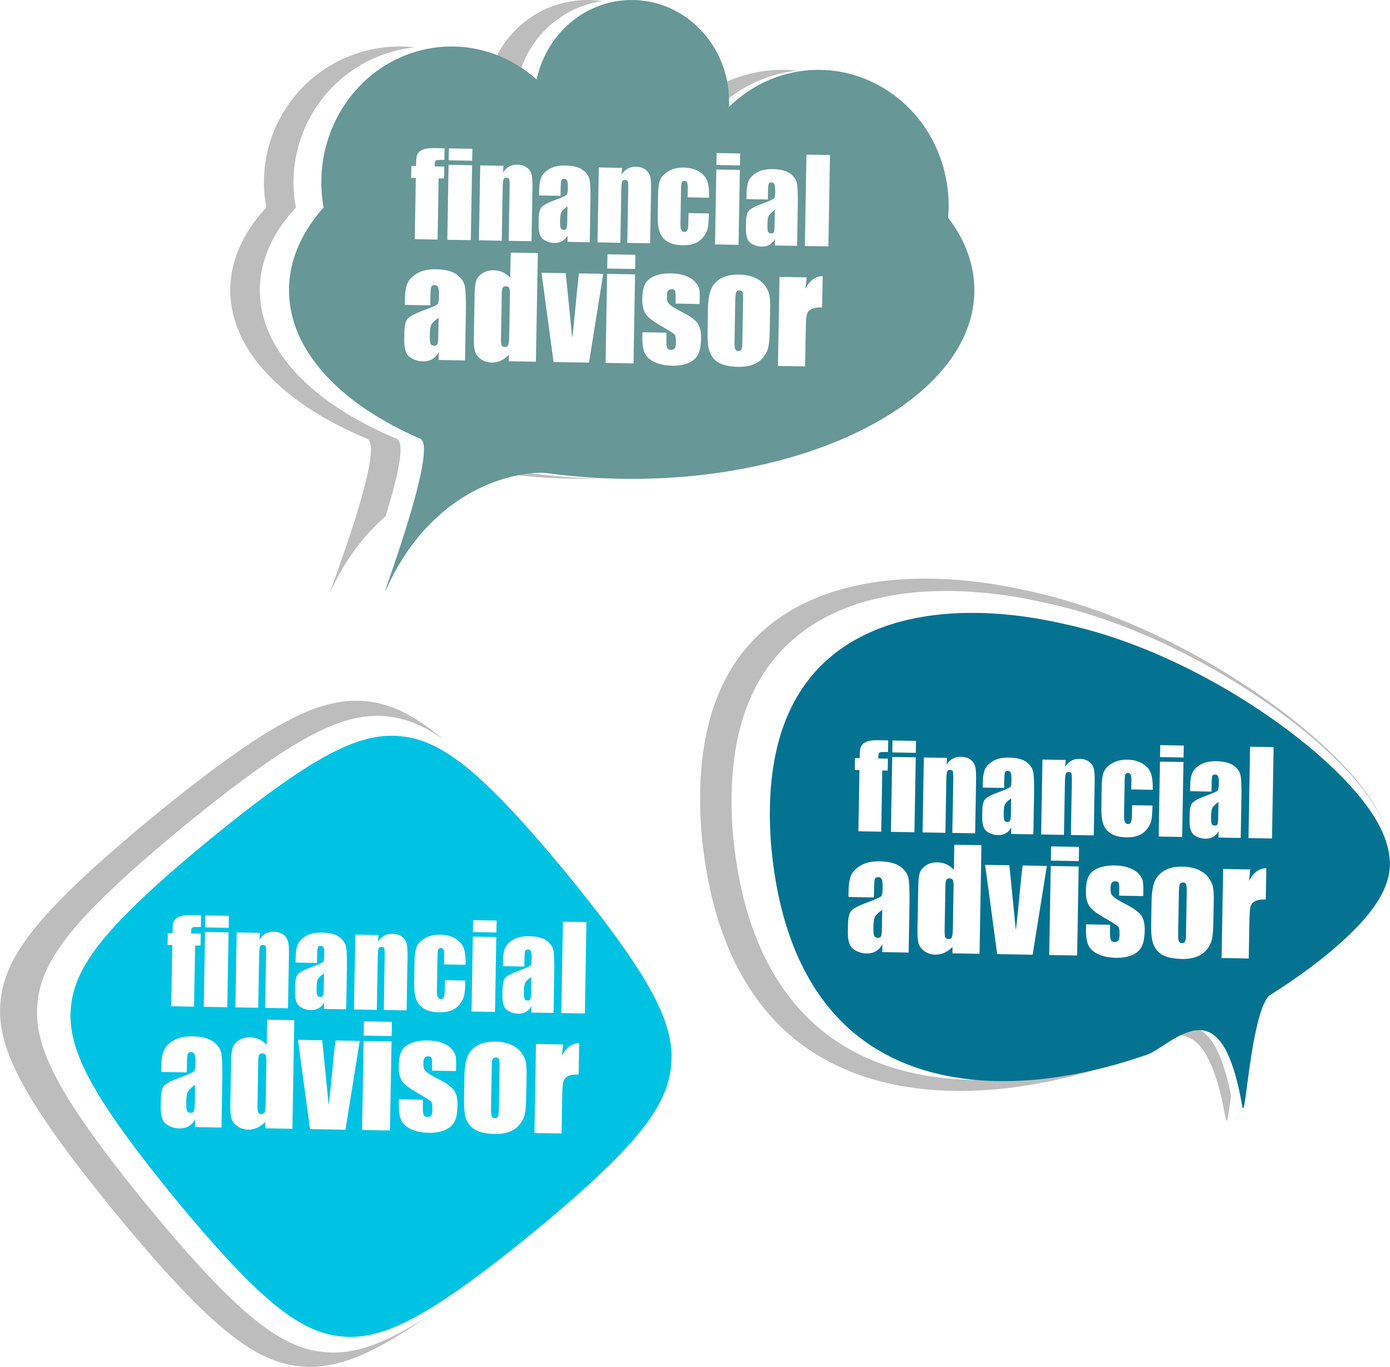 Do You Know the Cost of Your Financial Advisor?